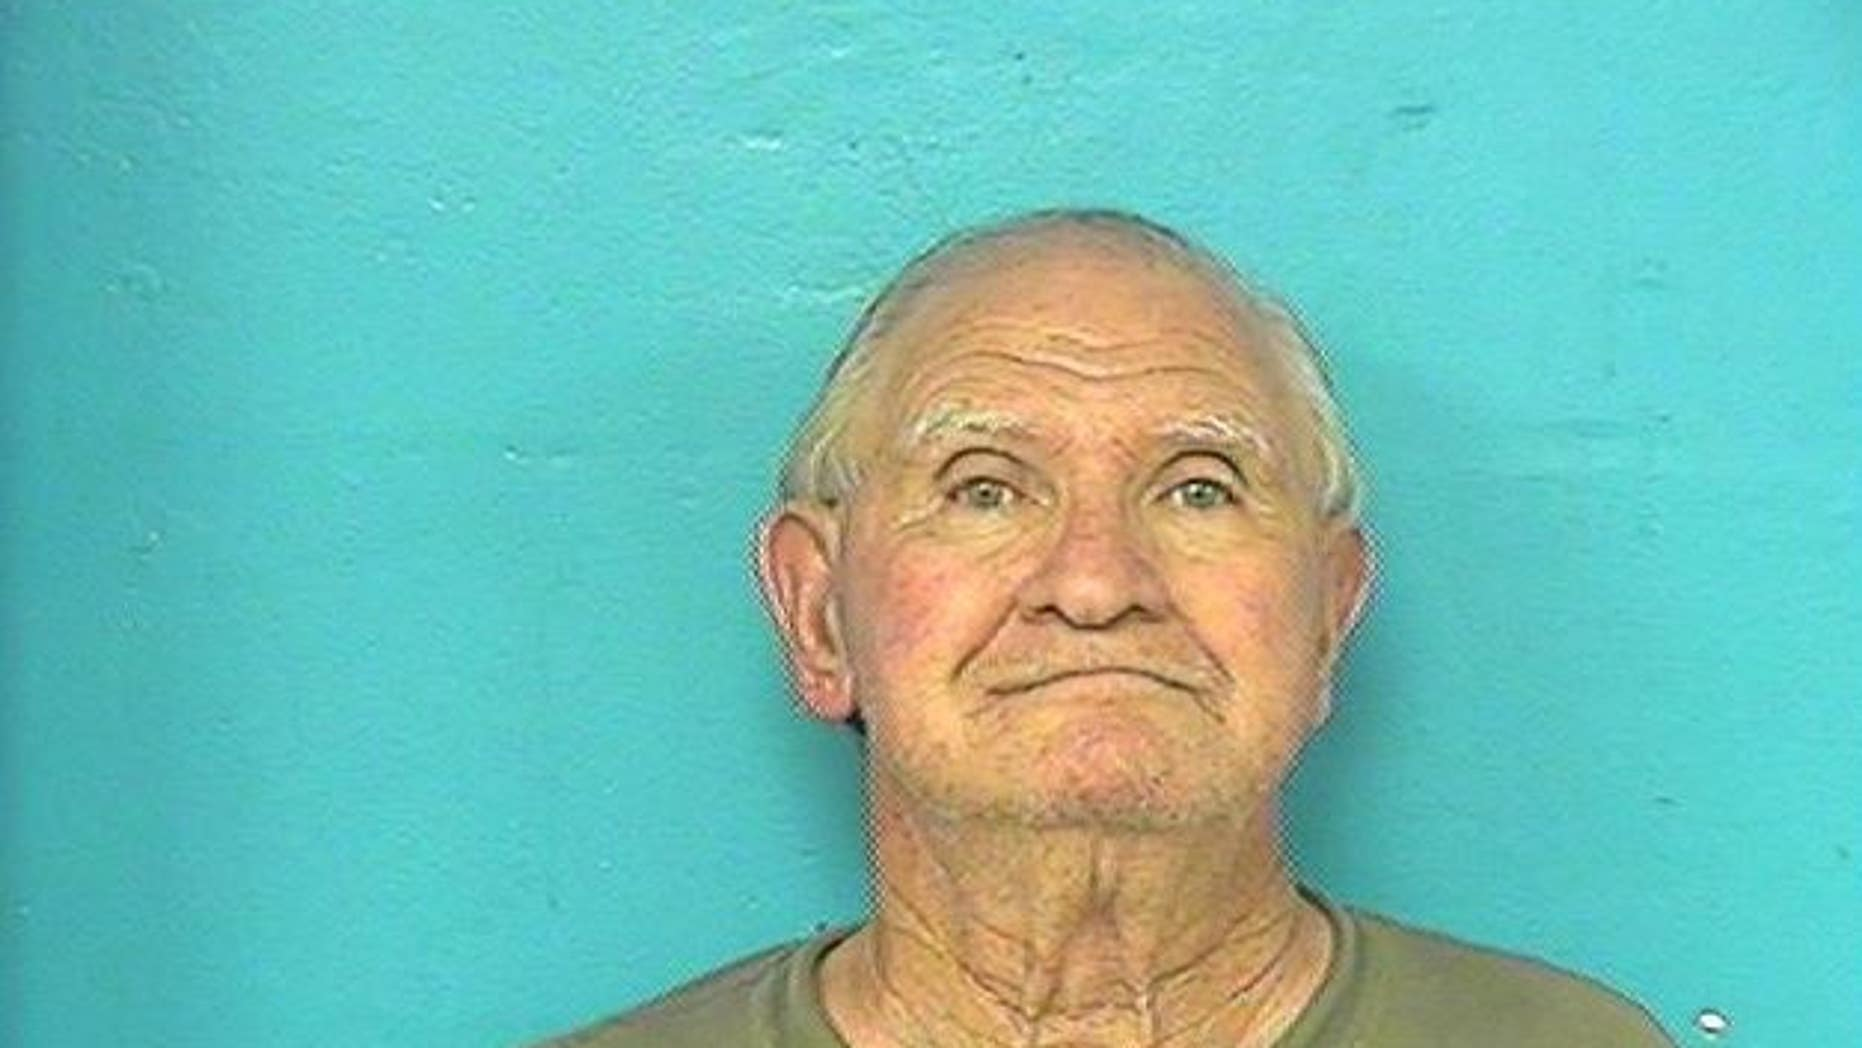 Douglas Ferguson, 76, was charged with attempted second-degree murder and violating probation.